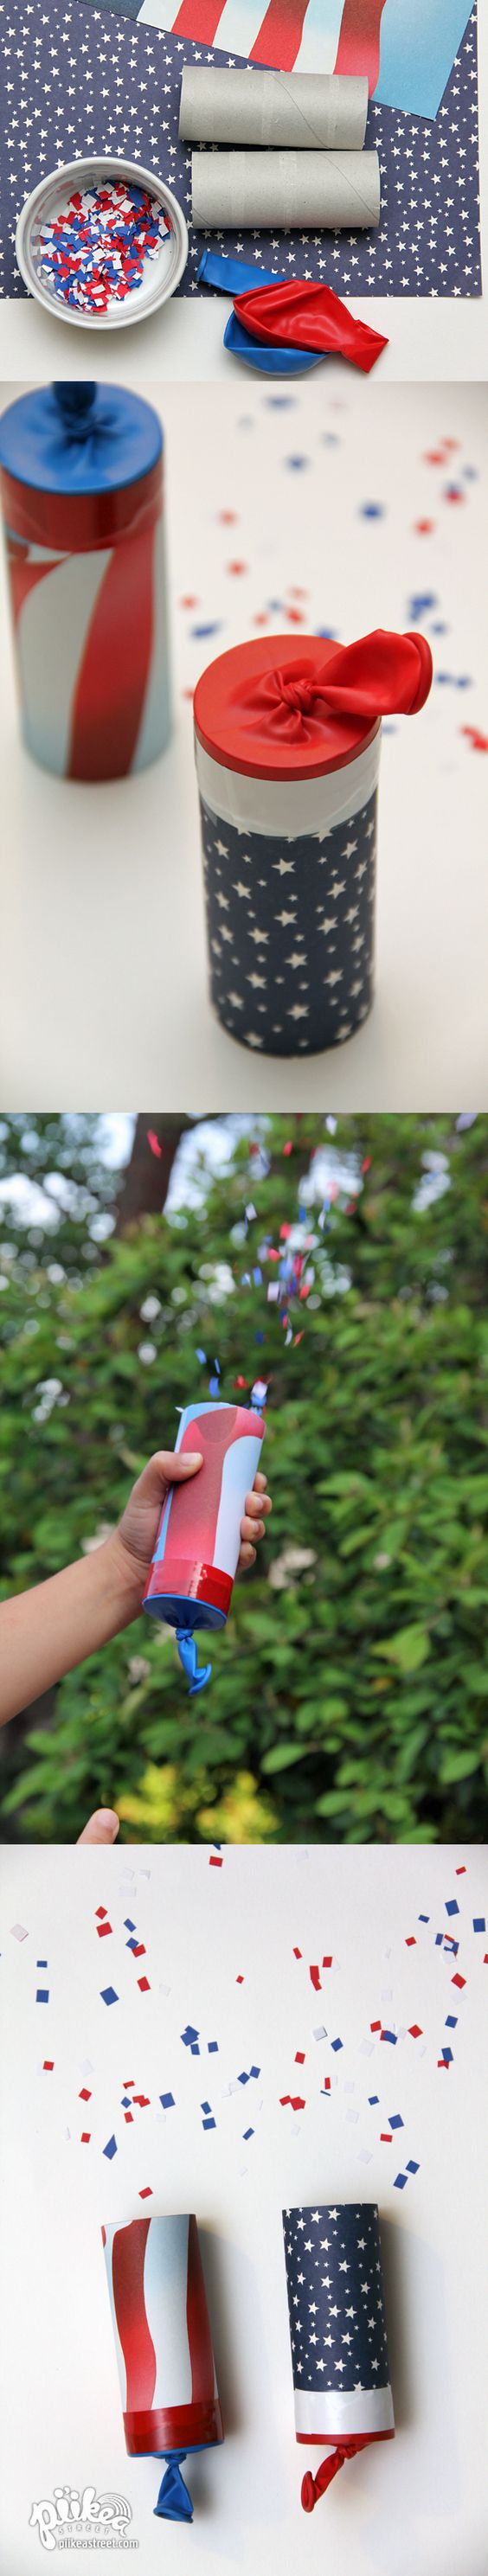 DIY Confetti Launchers for the 4th of July!: